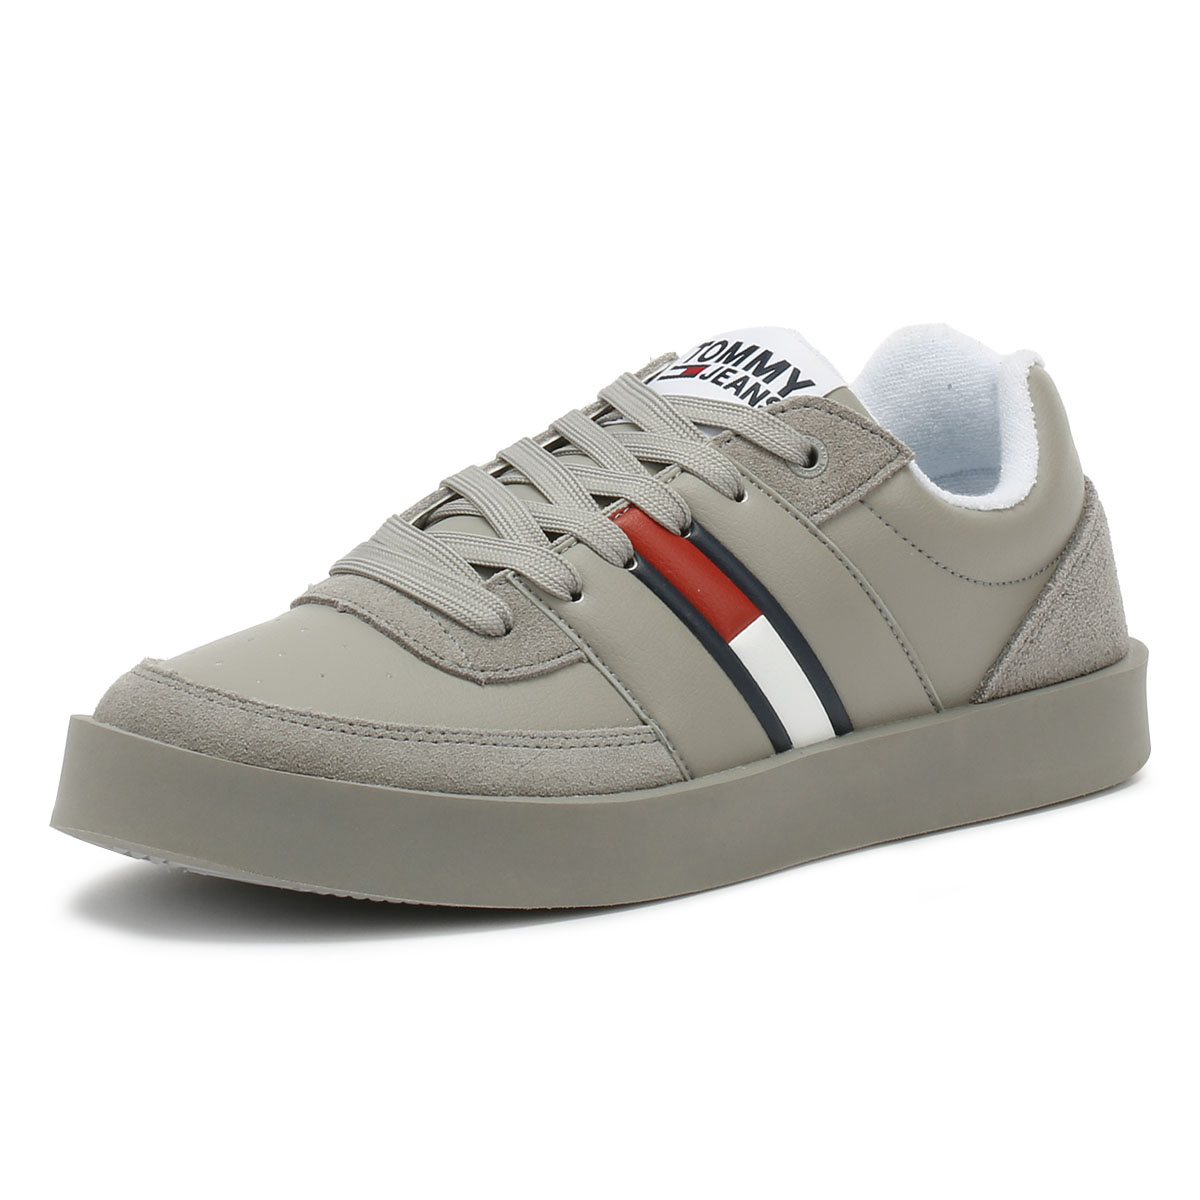 df57b93f92f8bd Details about Tommy Hilfiger Jeans Light Mens Trainers Drizzle Grey Lace Up  Sport Casual Shoes